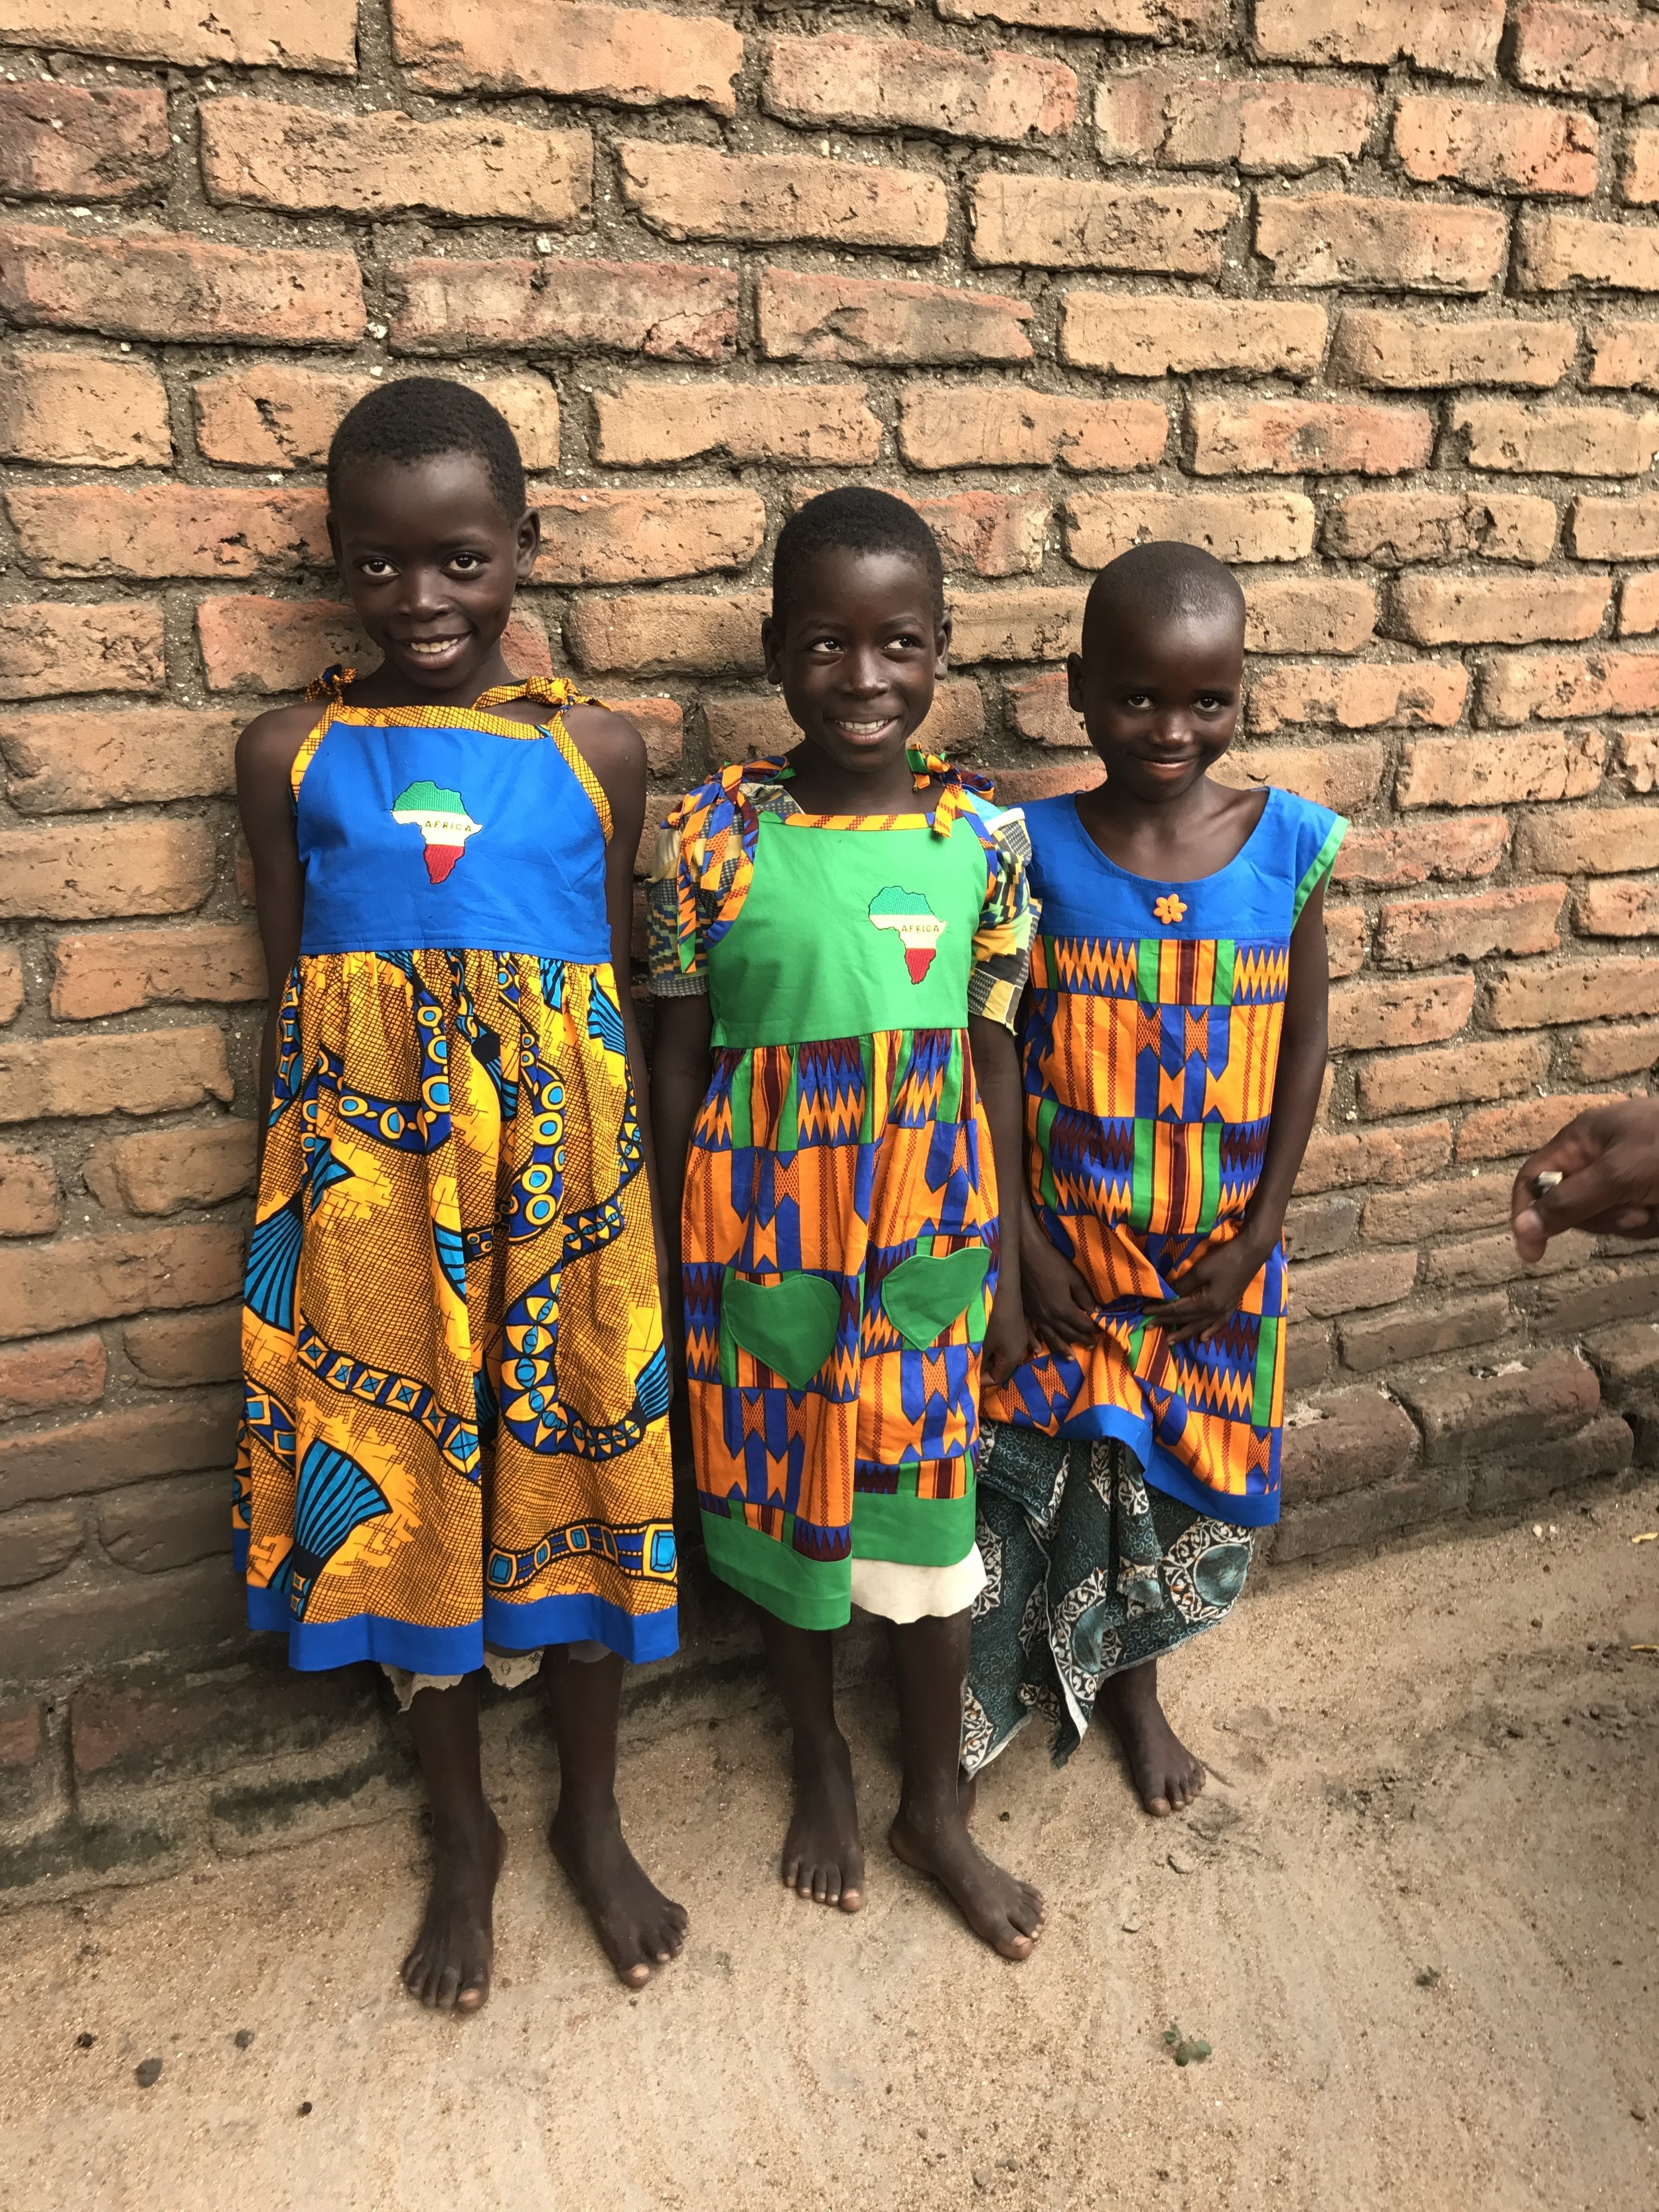 New Gallery — Little Dresses for Africa